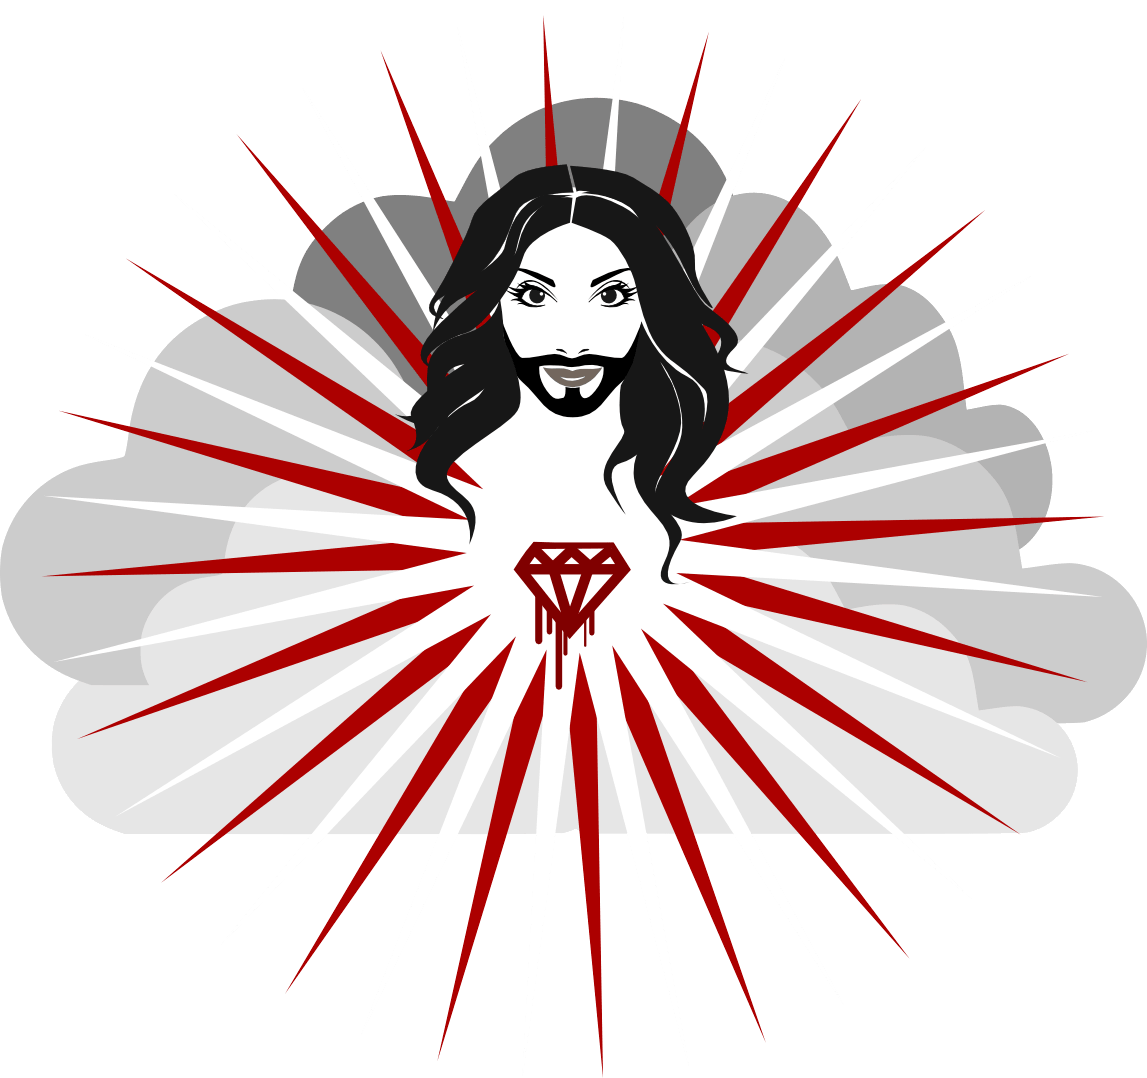 Conchita in the clouds